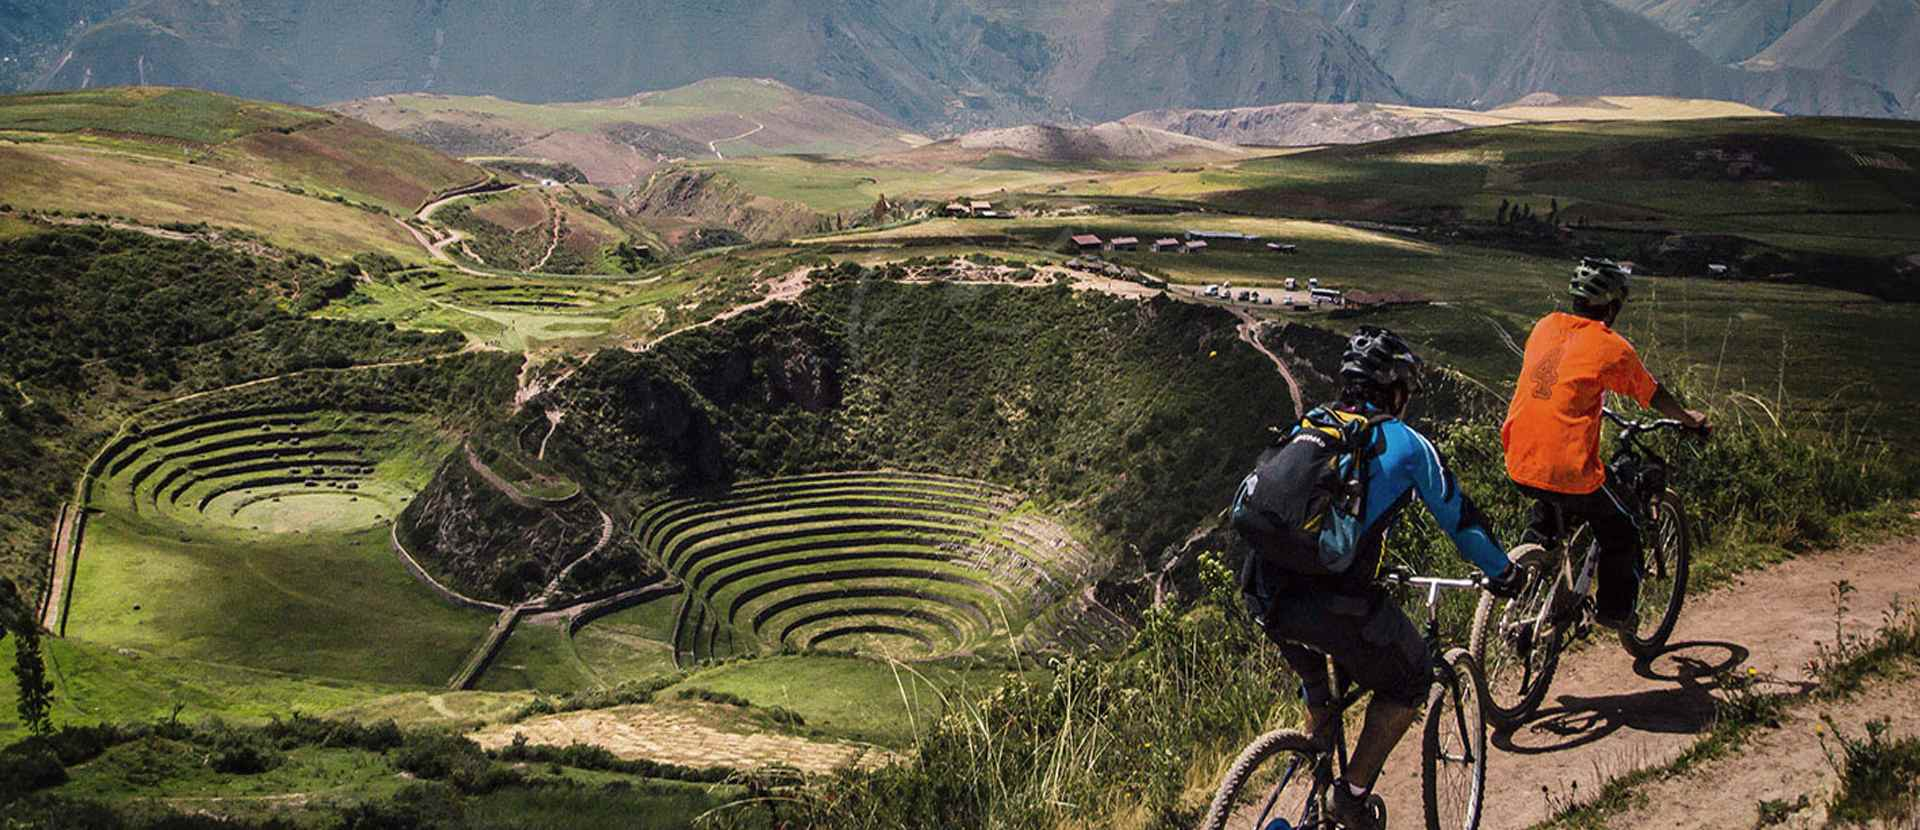 Tour en Bicicleta 1 dia (Maras, Moray) - Inka Jungle Trek